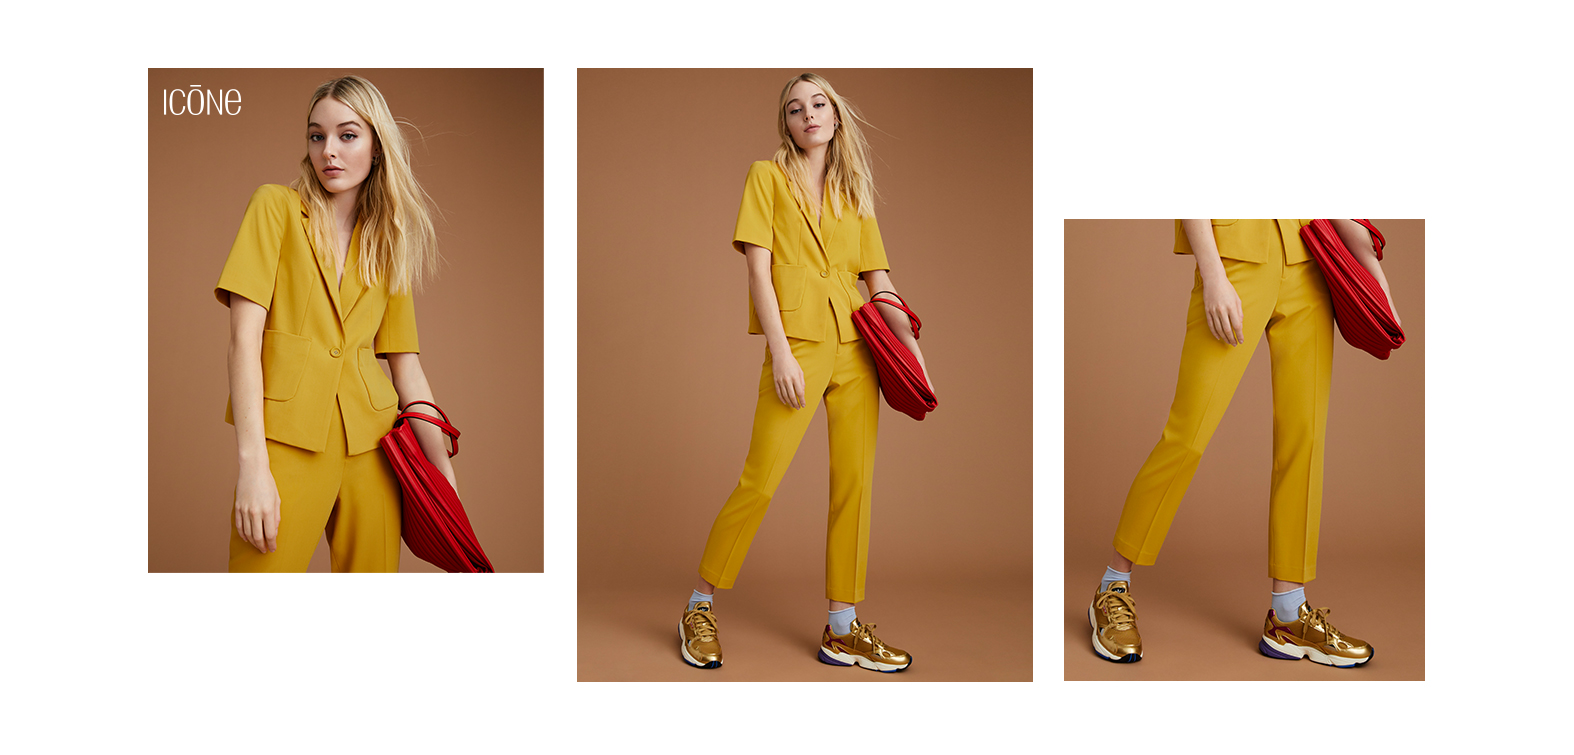 9e4d876be32ae This hot hue is a must-have that puts a bright spin on the suit. The result  is a radiant look from head to toe that exudes confidence and distinctive  style.